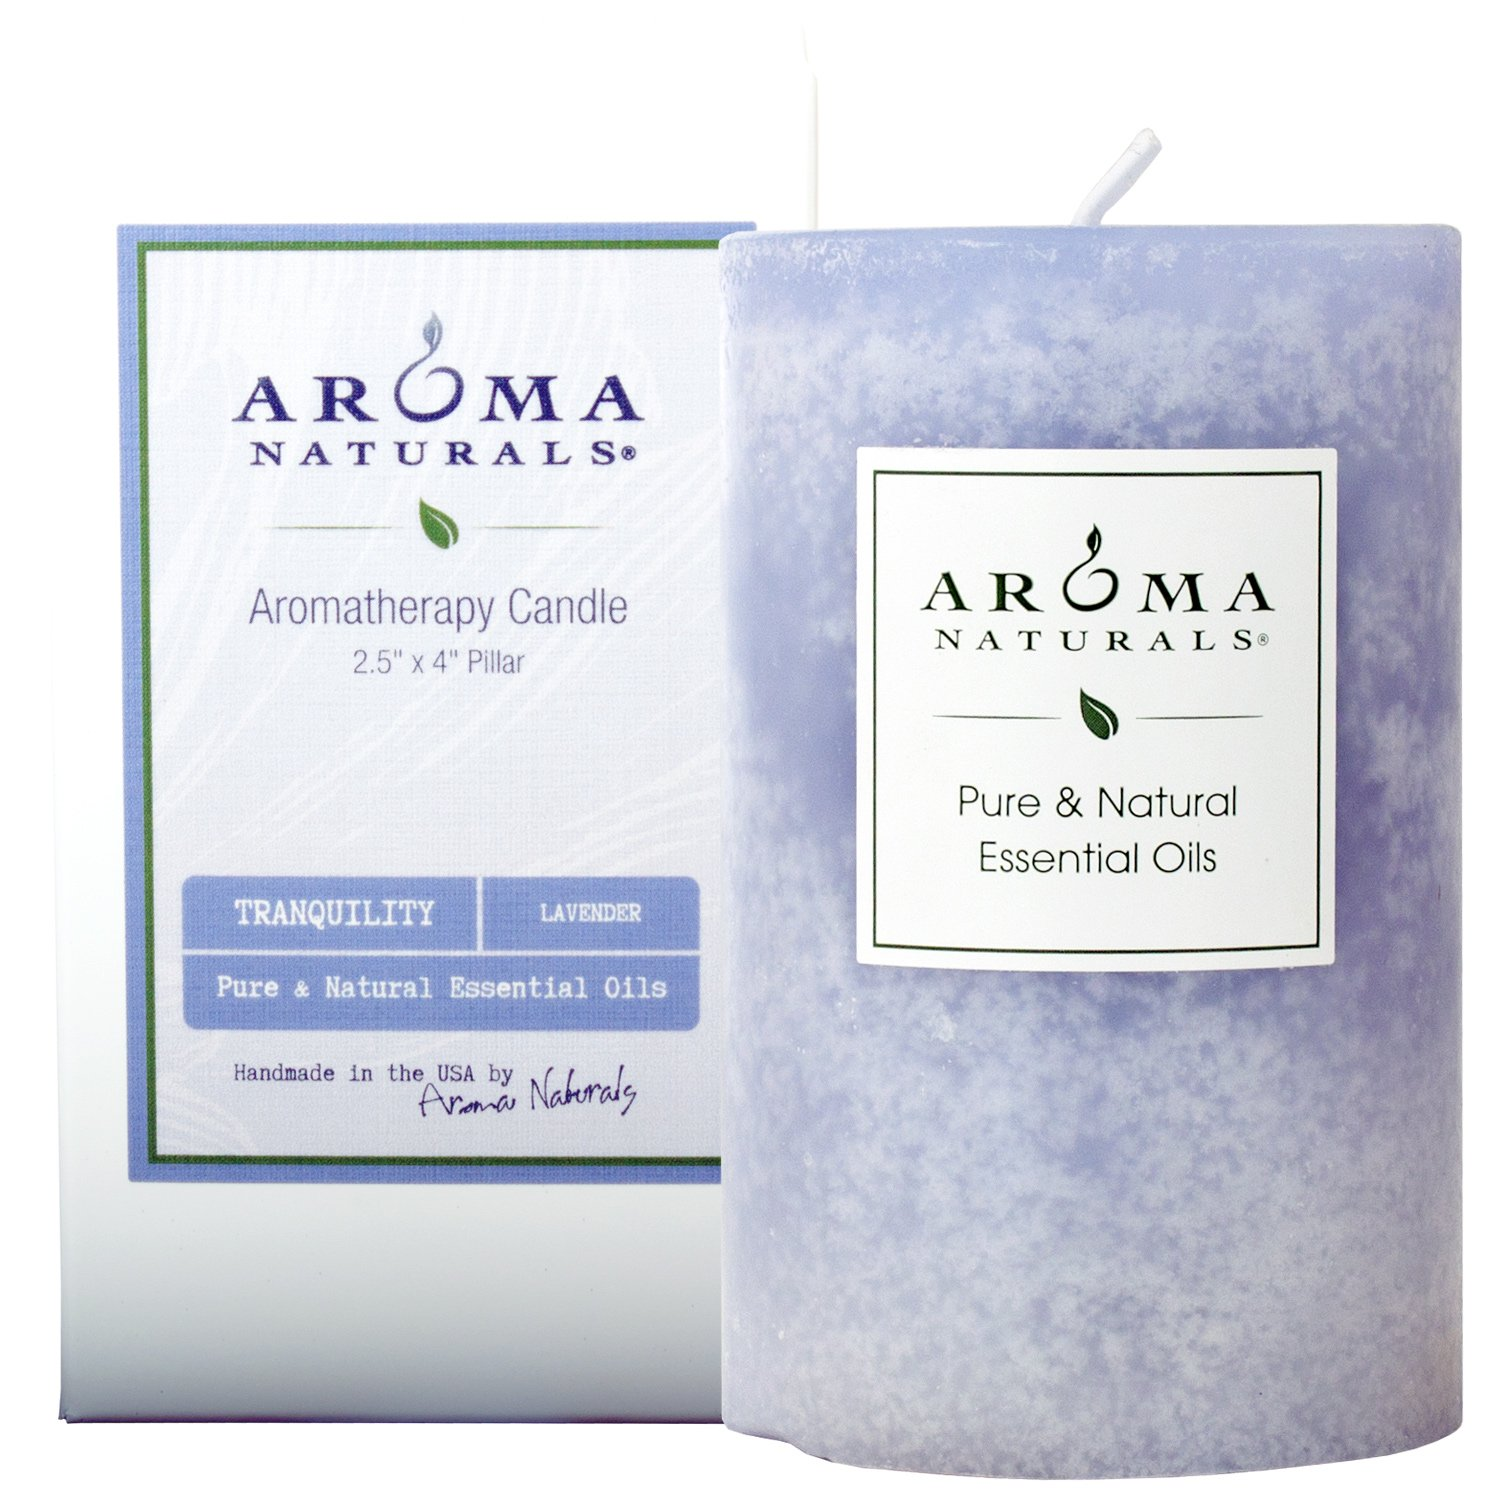 Aroma Naturals Essential Oil Tranquility Pillar Candle, 2.5'' x 4'', Lavender, 11 Ounce by Aroma Naturals